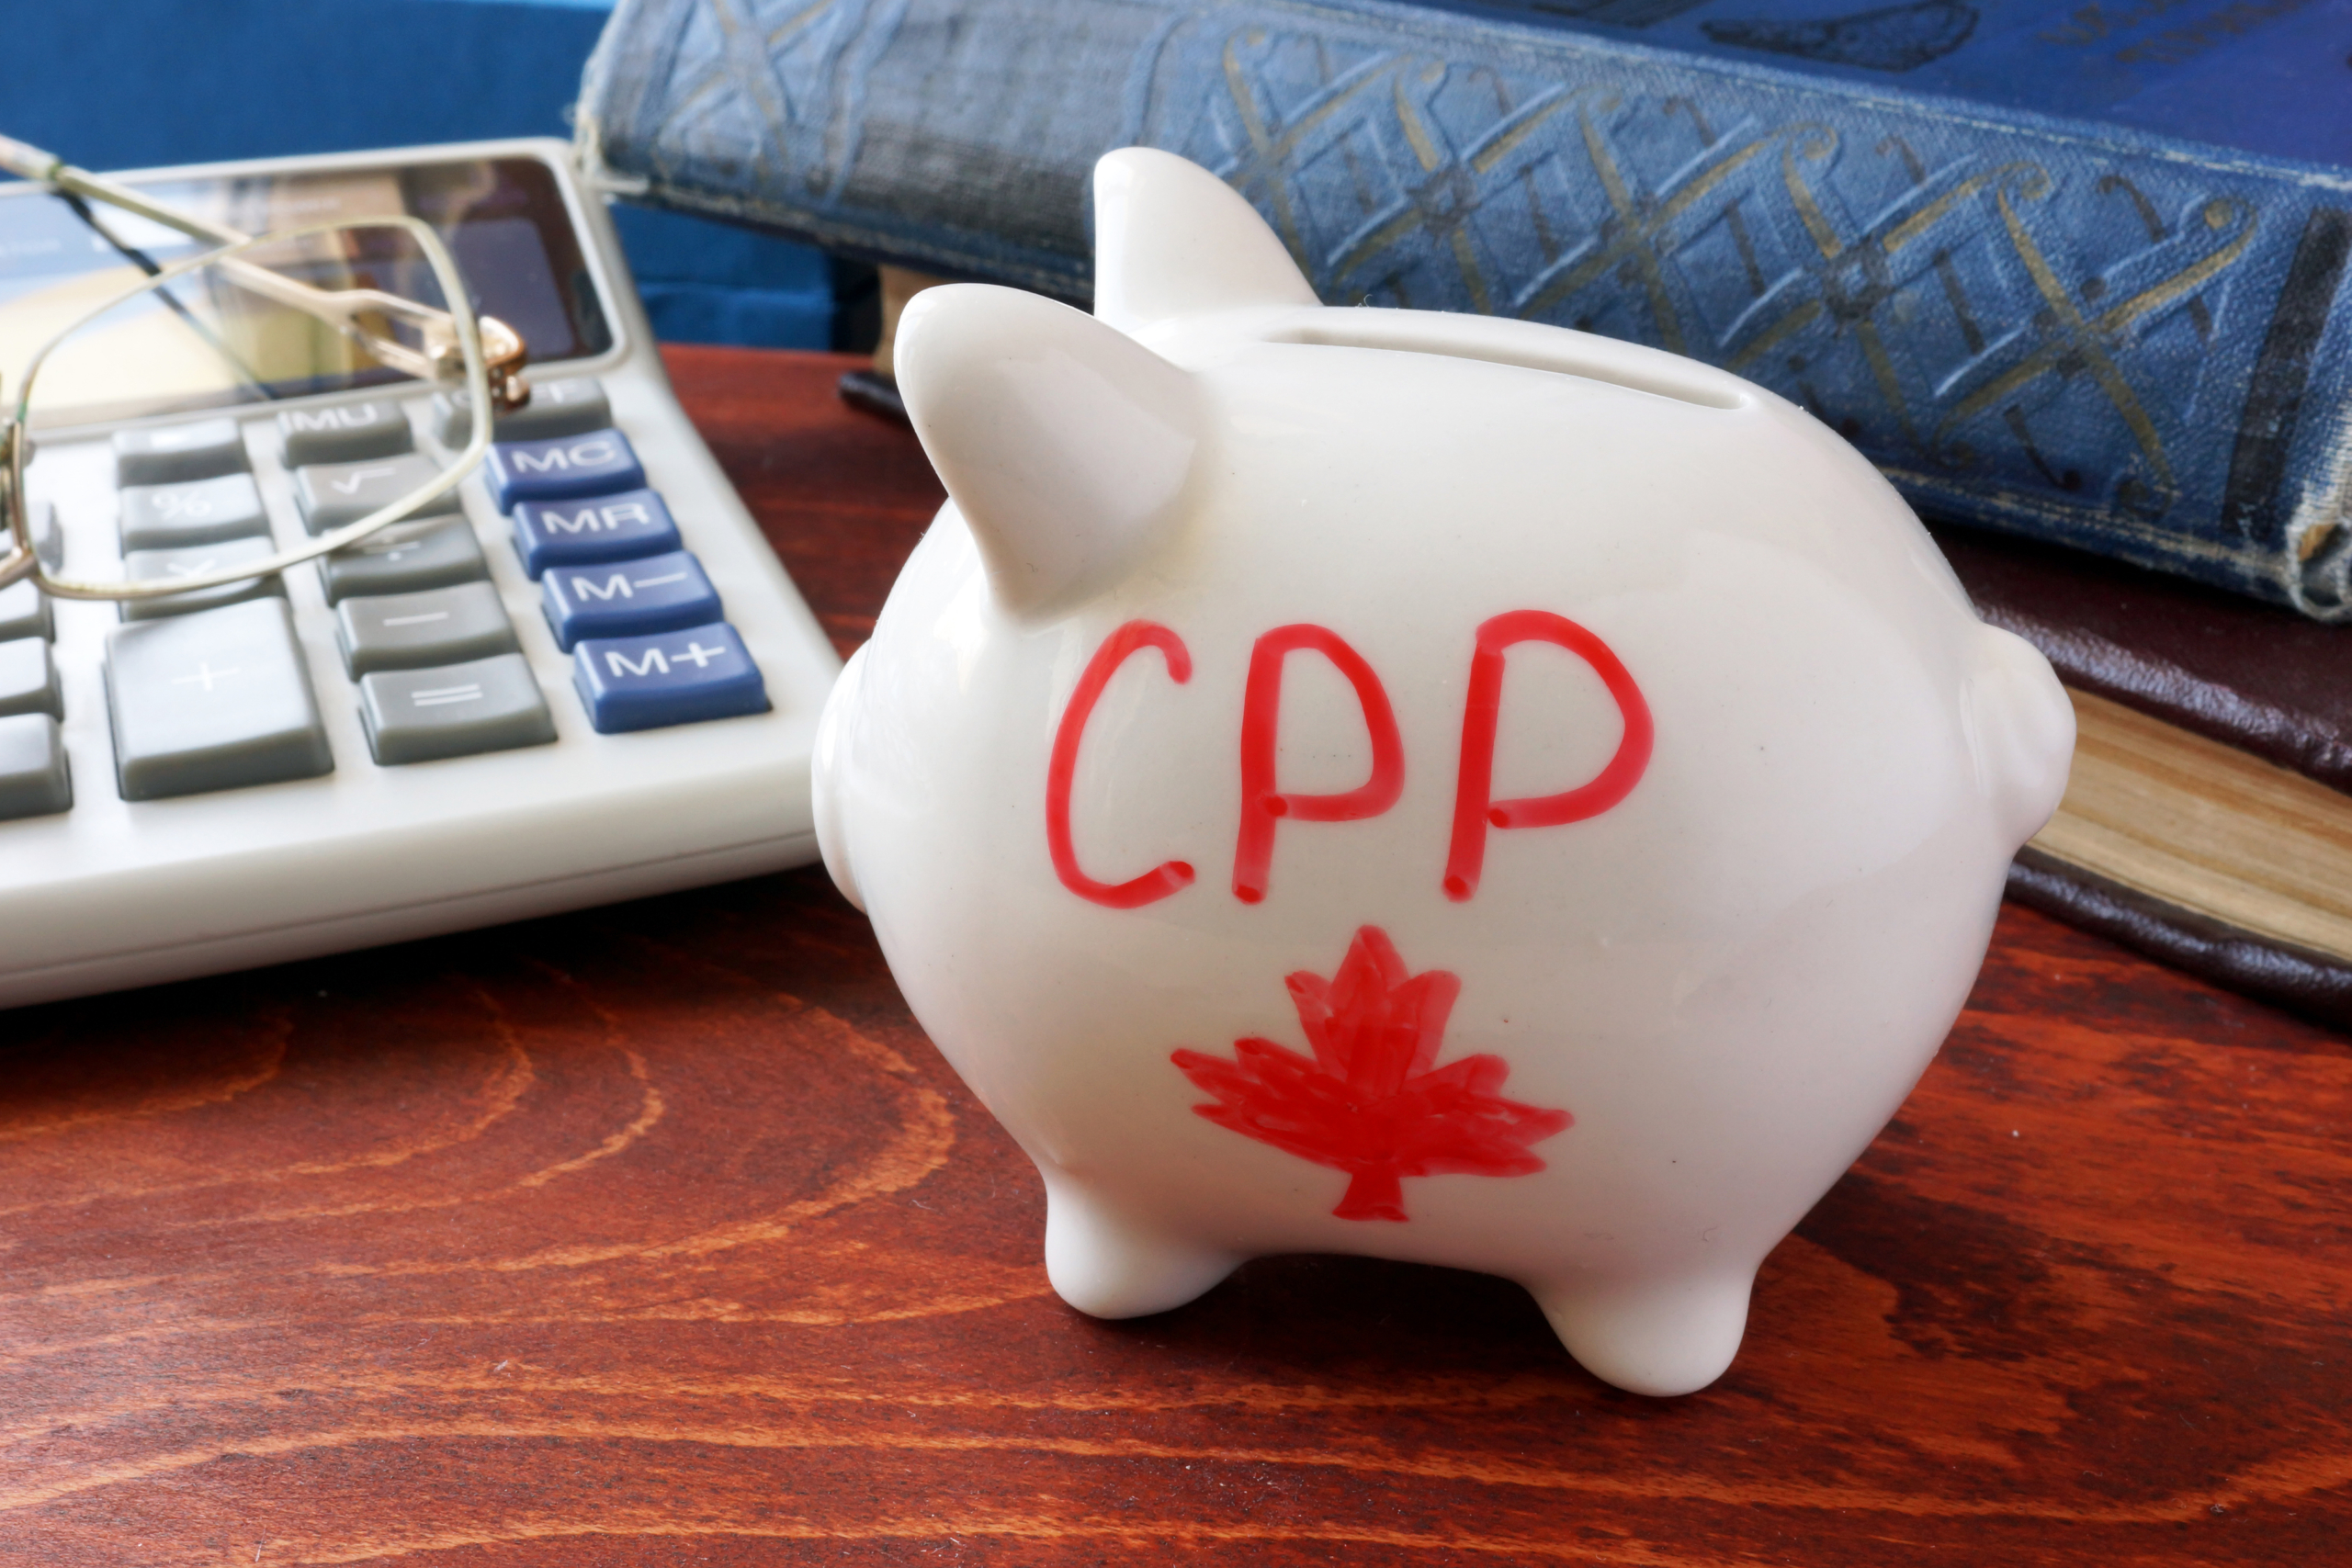 When Should I Start my CPP Payments?